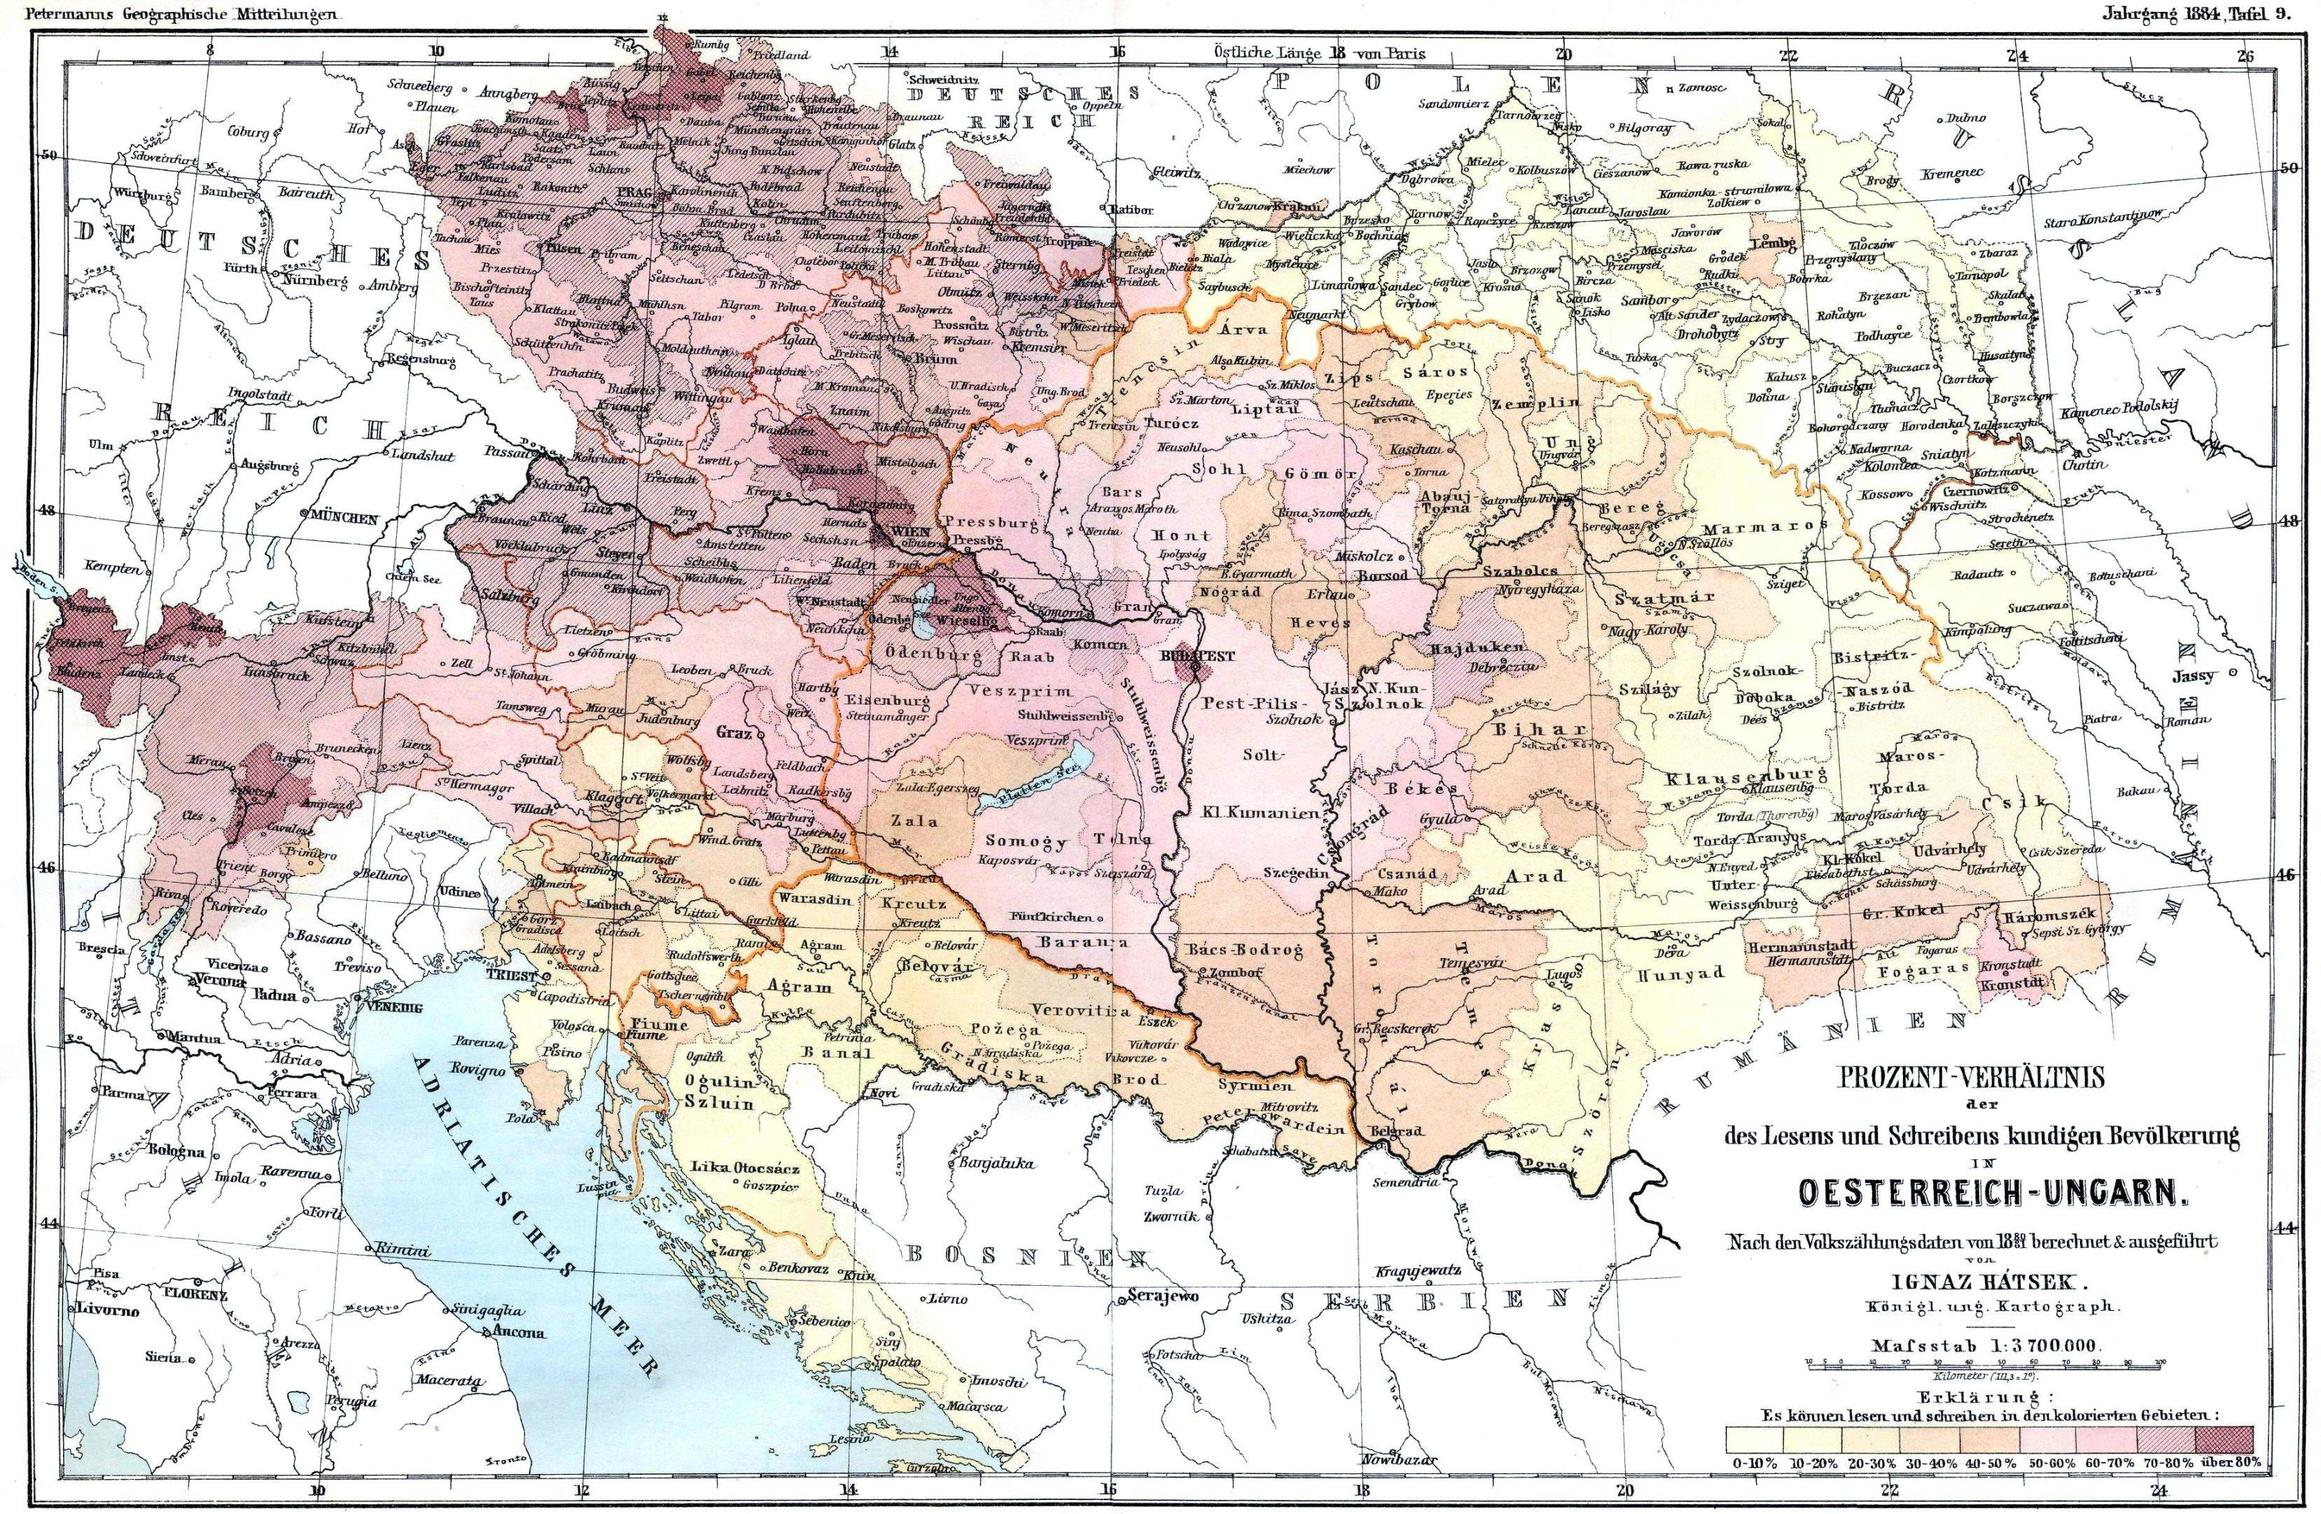 Literacy in Austria-Hungary